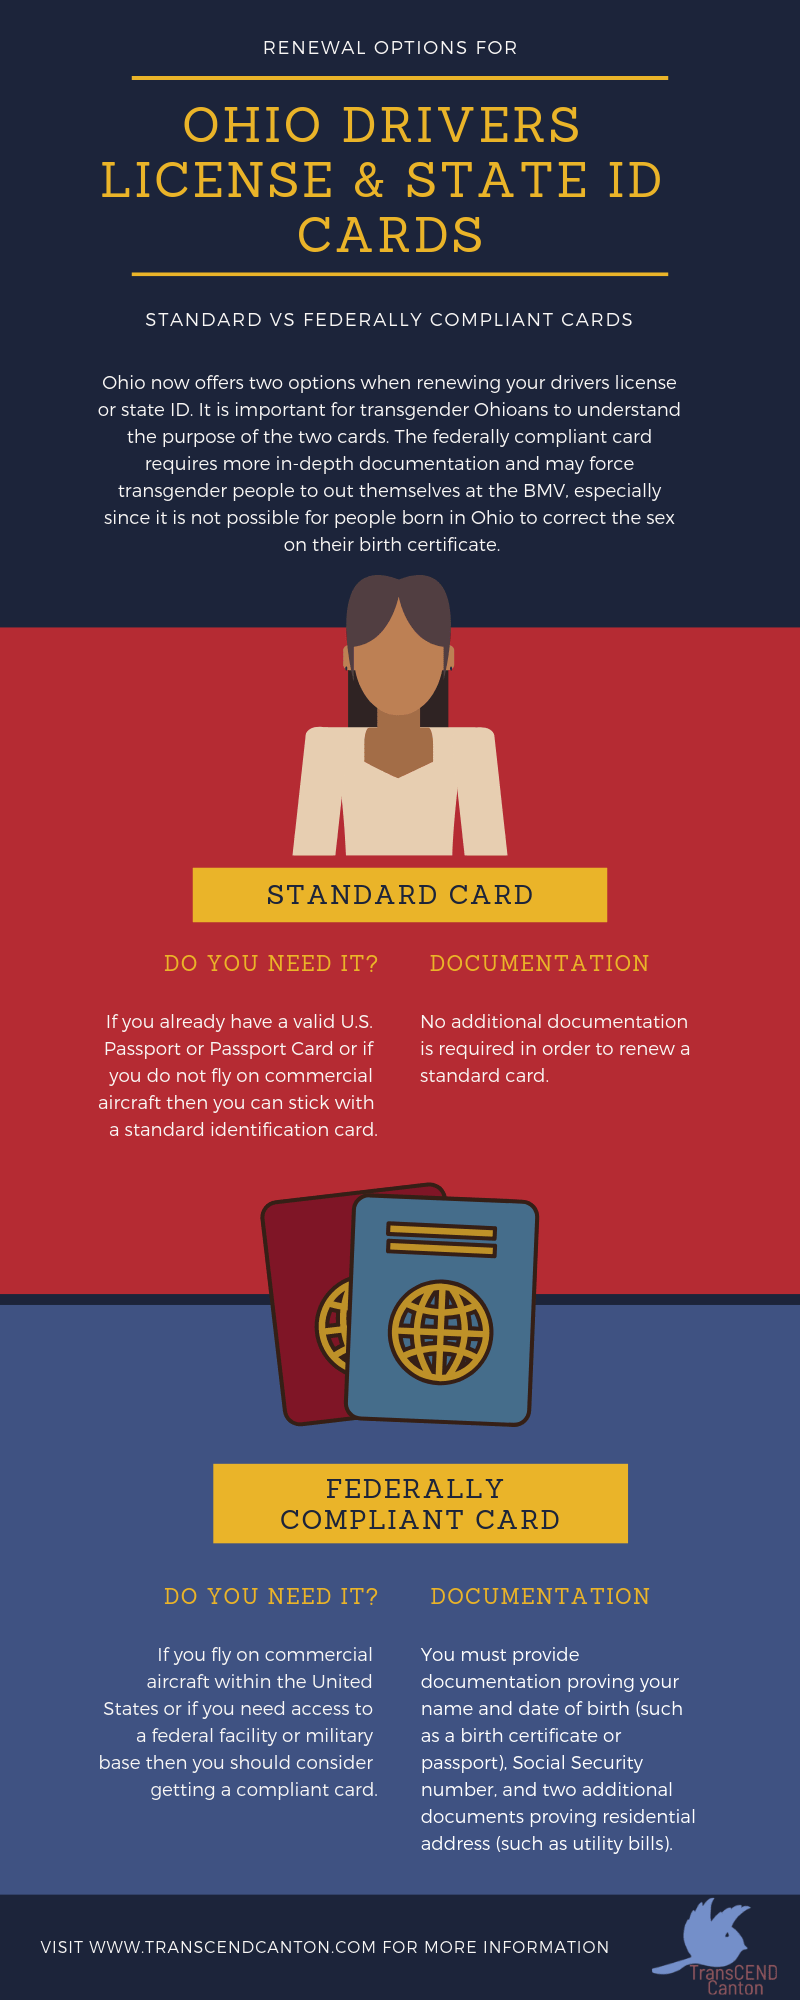 Infographic explaining the difference between standard and federally compliant Ohio ID cards.